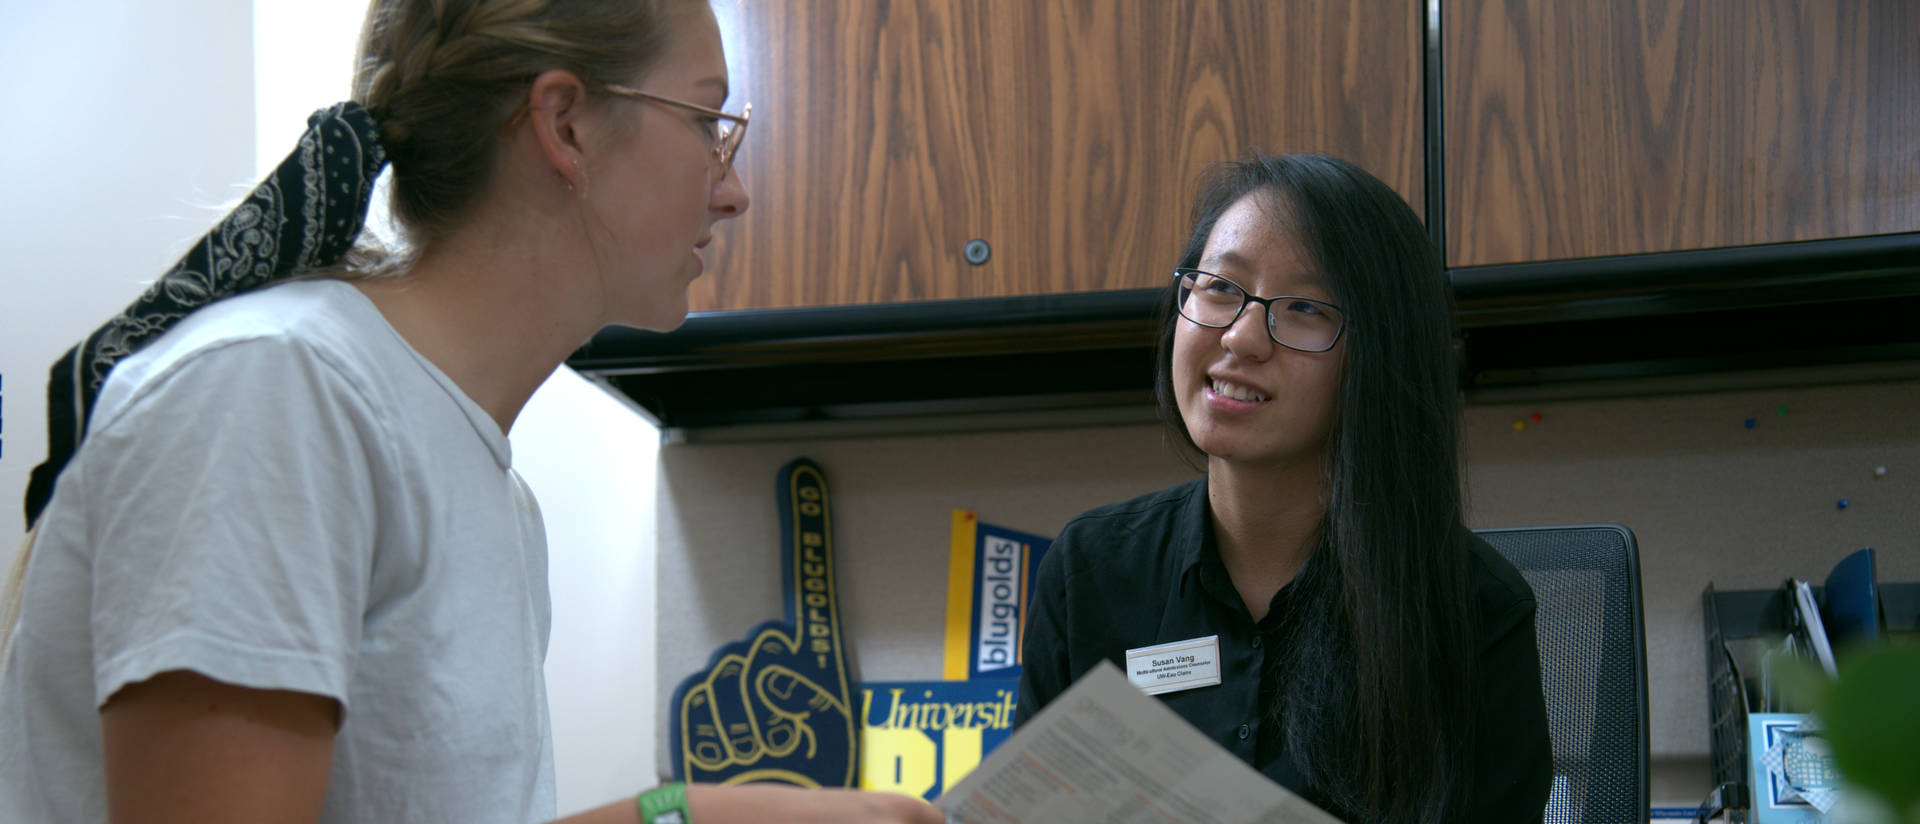 Female counselor advising a student